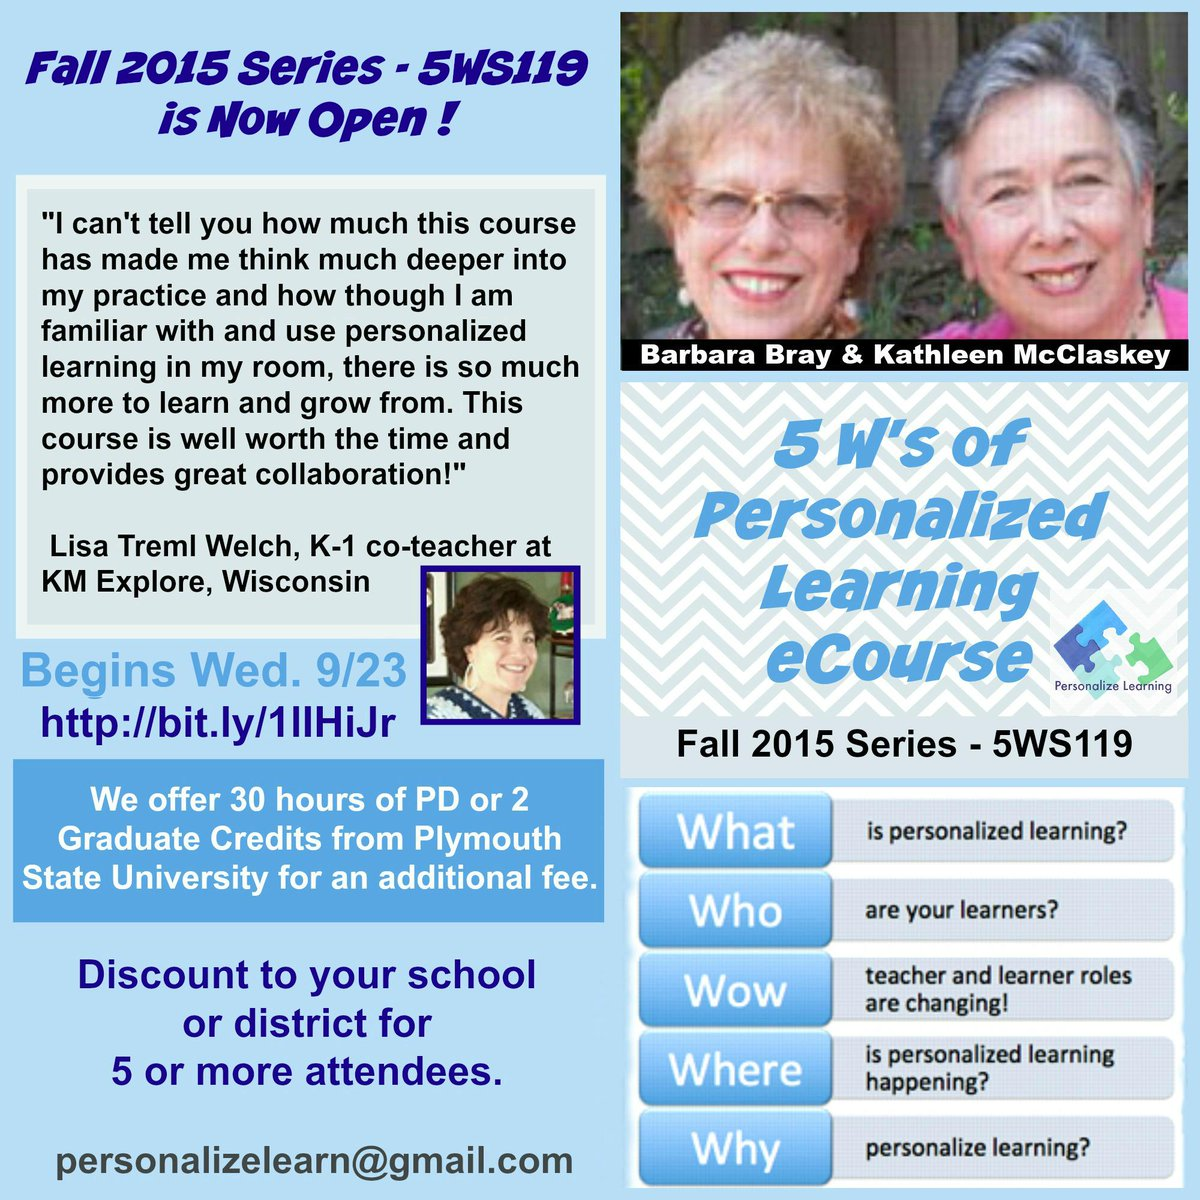 Our 5Ws to Personalize Lrning eCourse is open-Fall Registration! http://t.co/VyGNQhxo9E  #catholicedchat http://t.co/NC2GqIzjKf